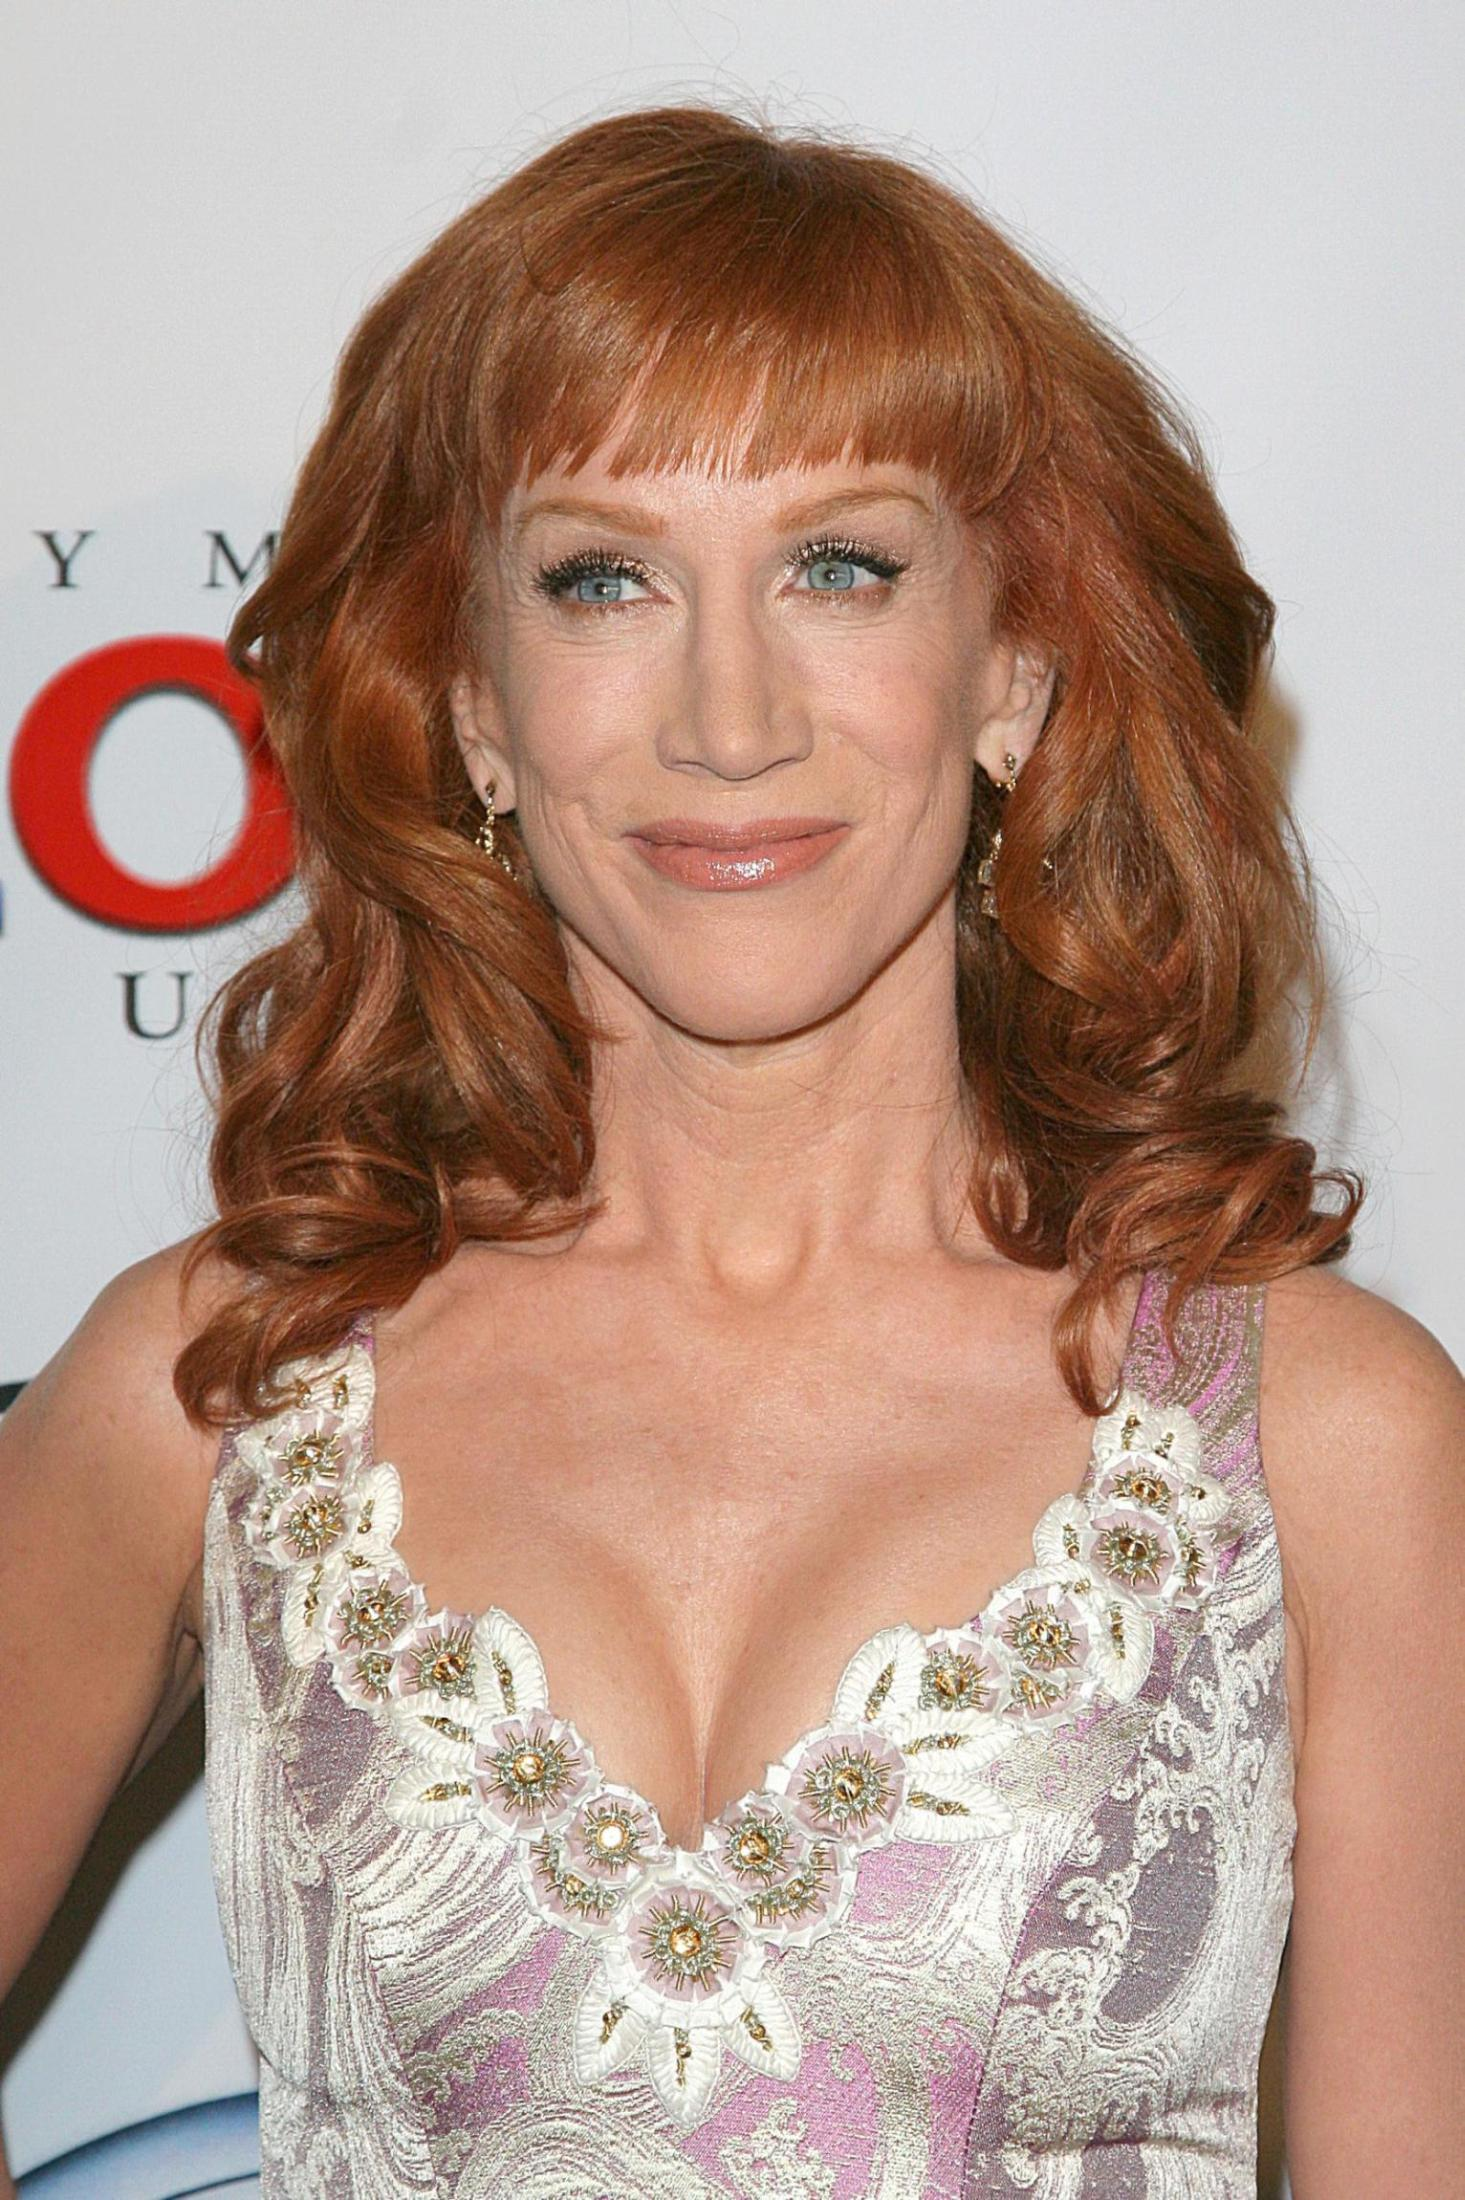 Kathy Griffin Wallpapers High Quality | Download Free